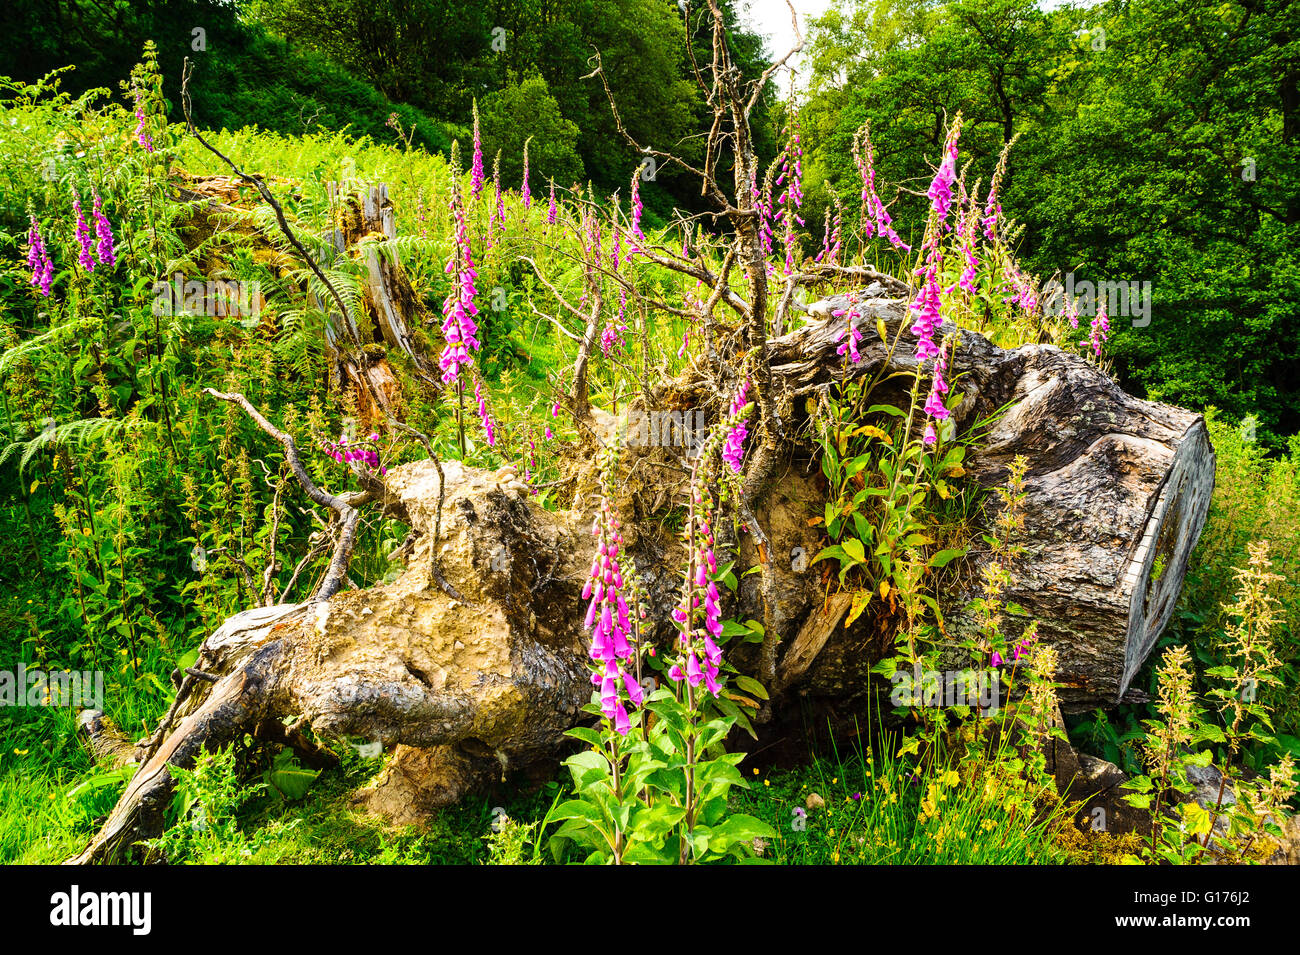 Foxgloves and tree-stump in Roeburndale in the Forest of Bowland Lancashire England - Stock Image